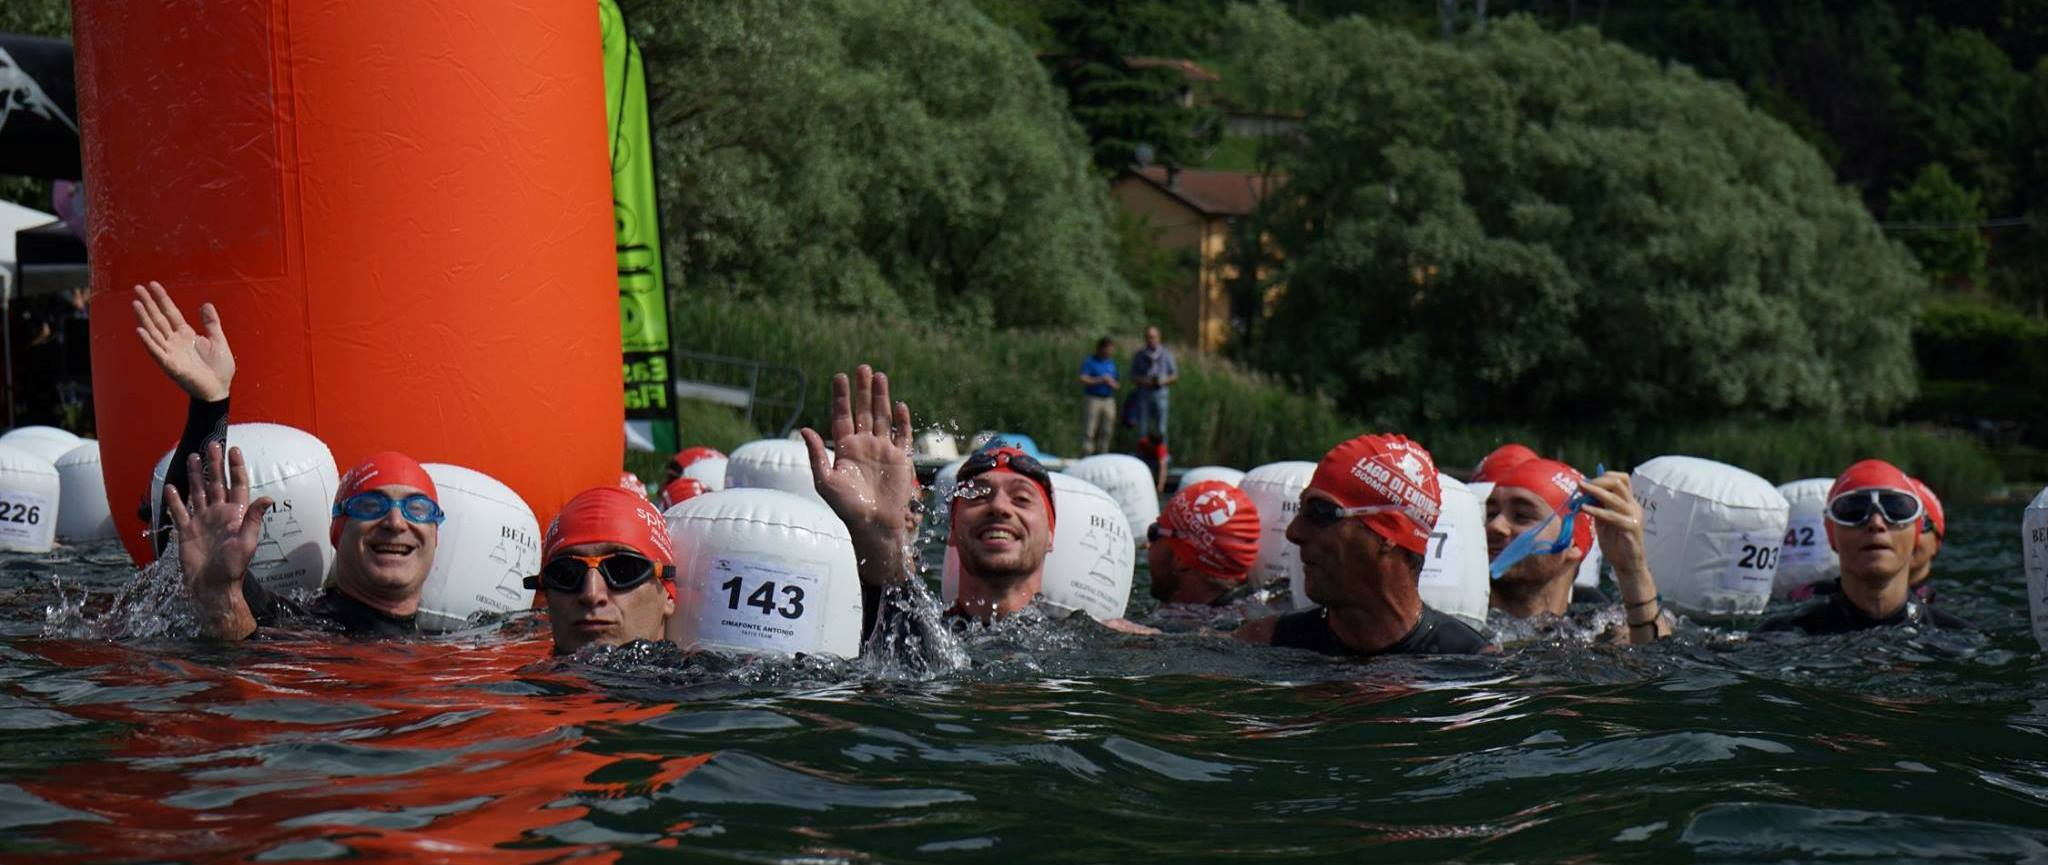 LIVE THE EXPERIENCE OF SWIM IN OPEN WATER